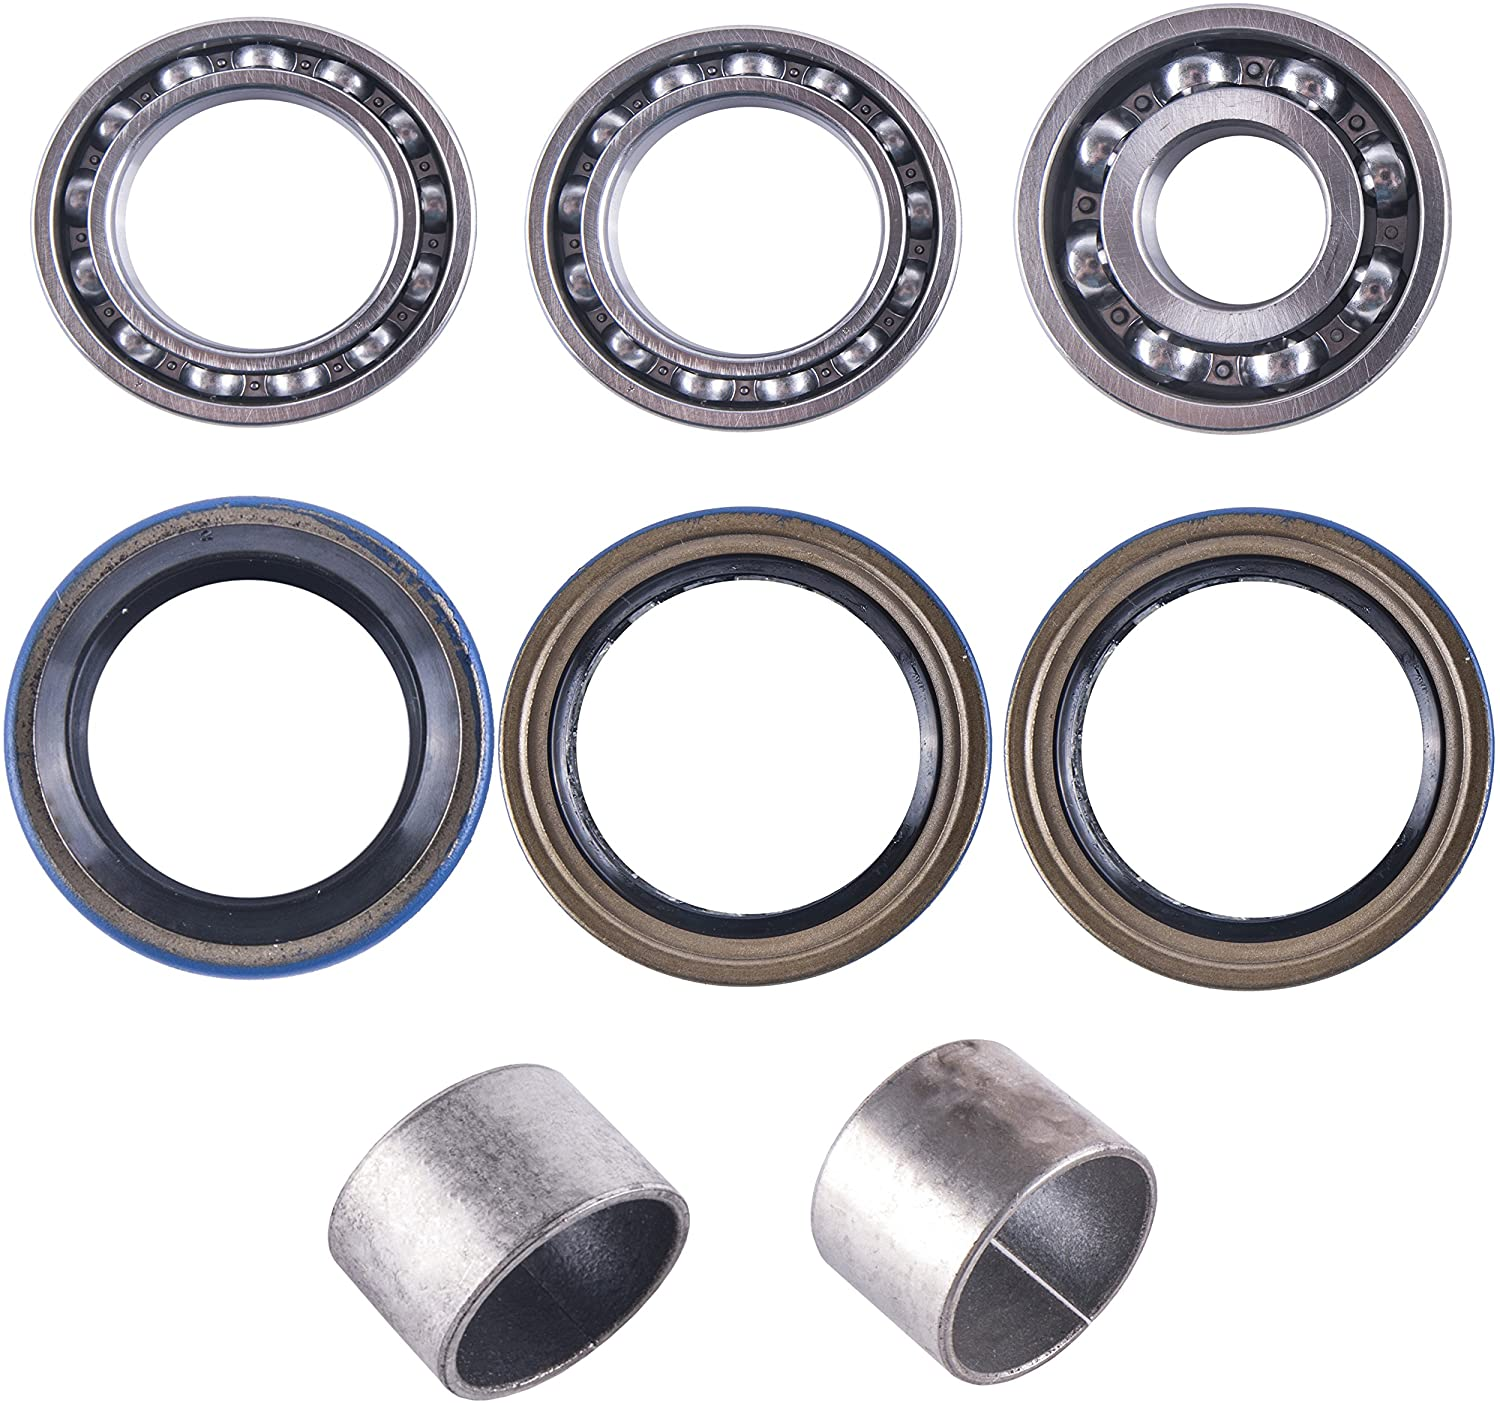 East Lake Axle rear differential bearing & seal kit compatible with Polaris Magnum 325/500 2000 2001 2002 Xpedition 425